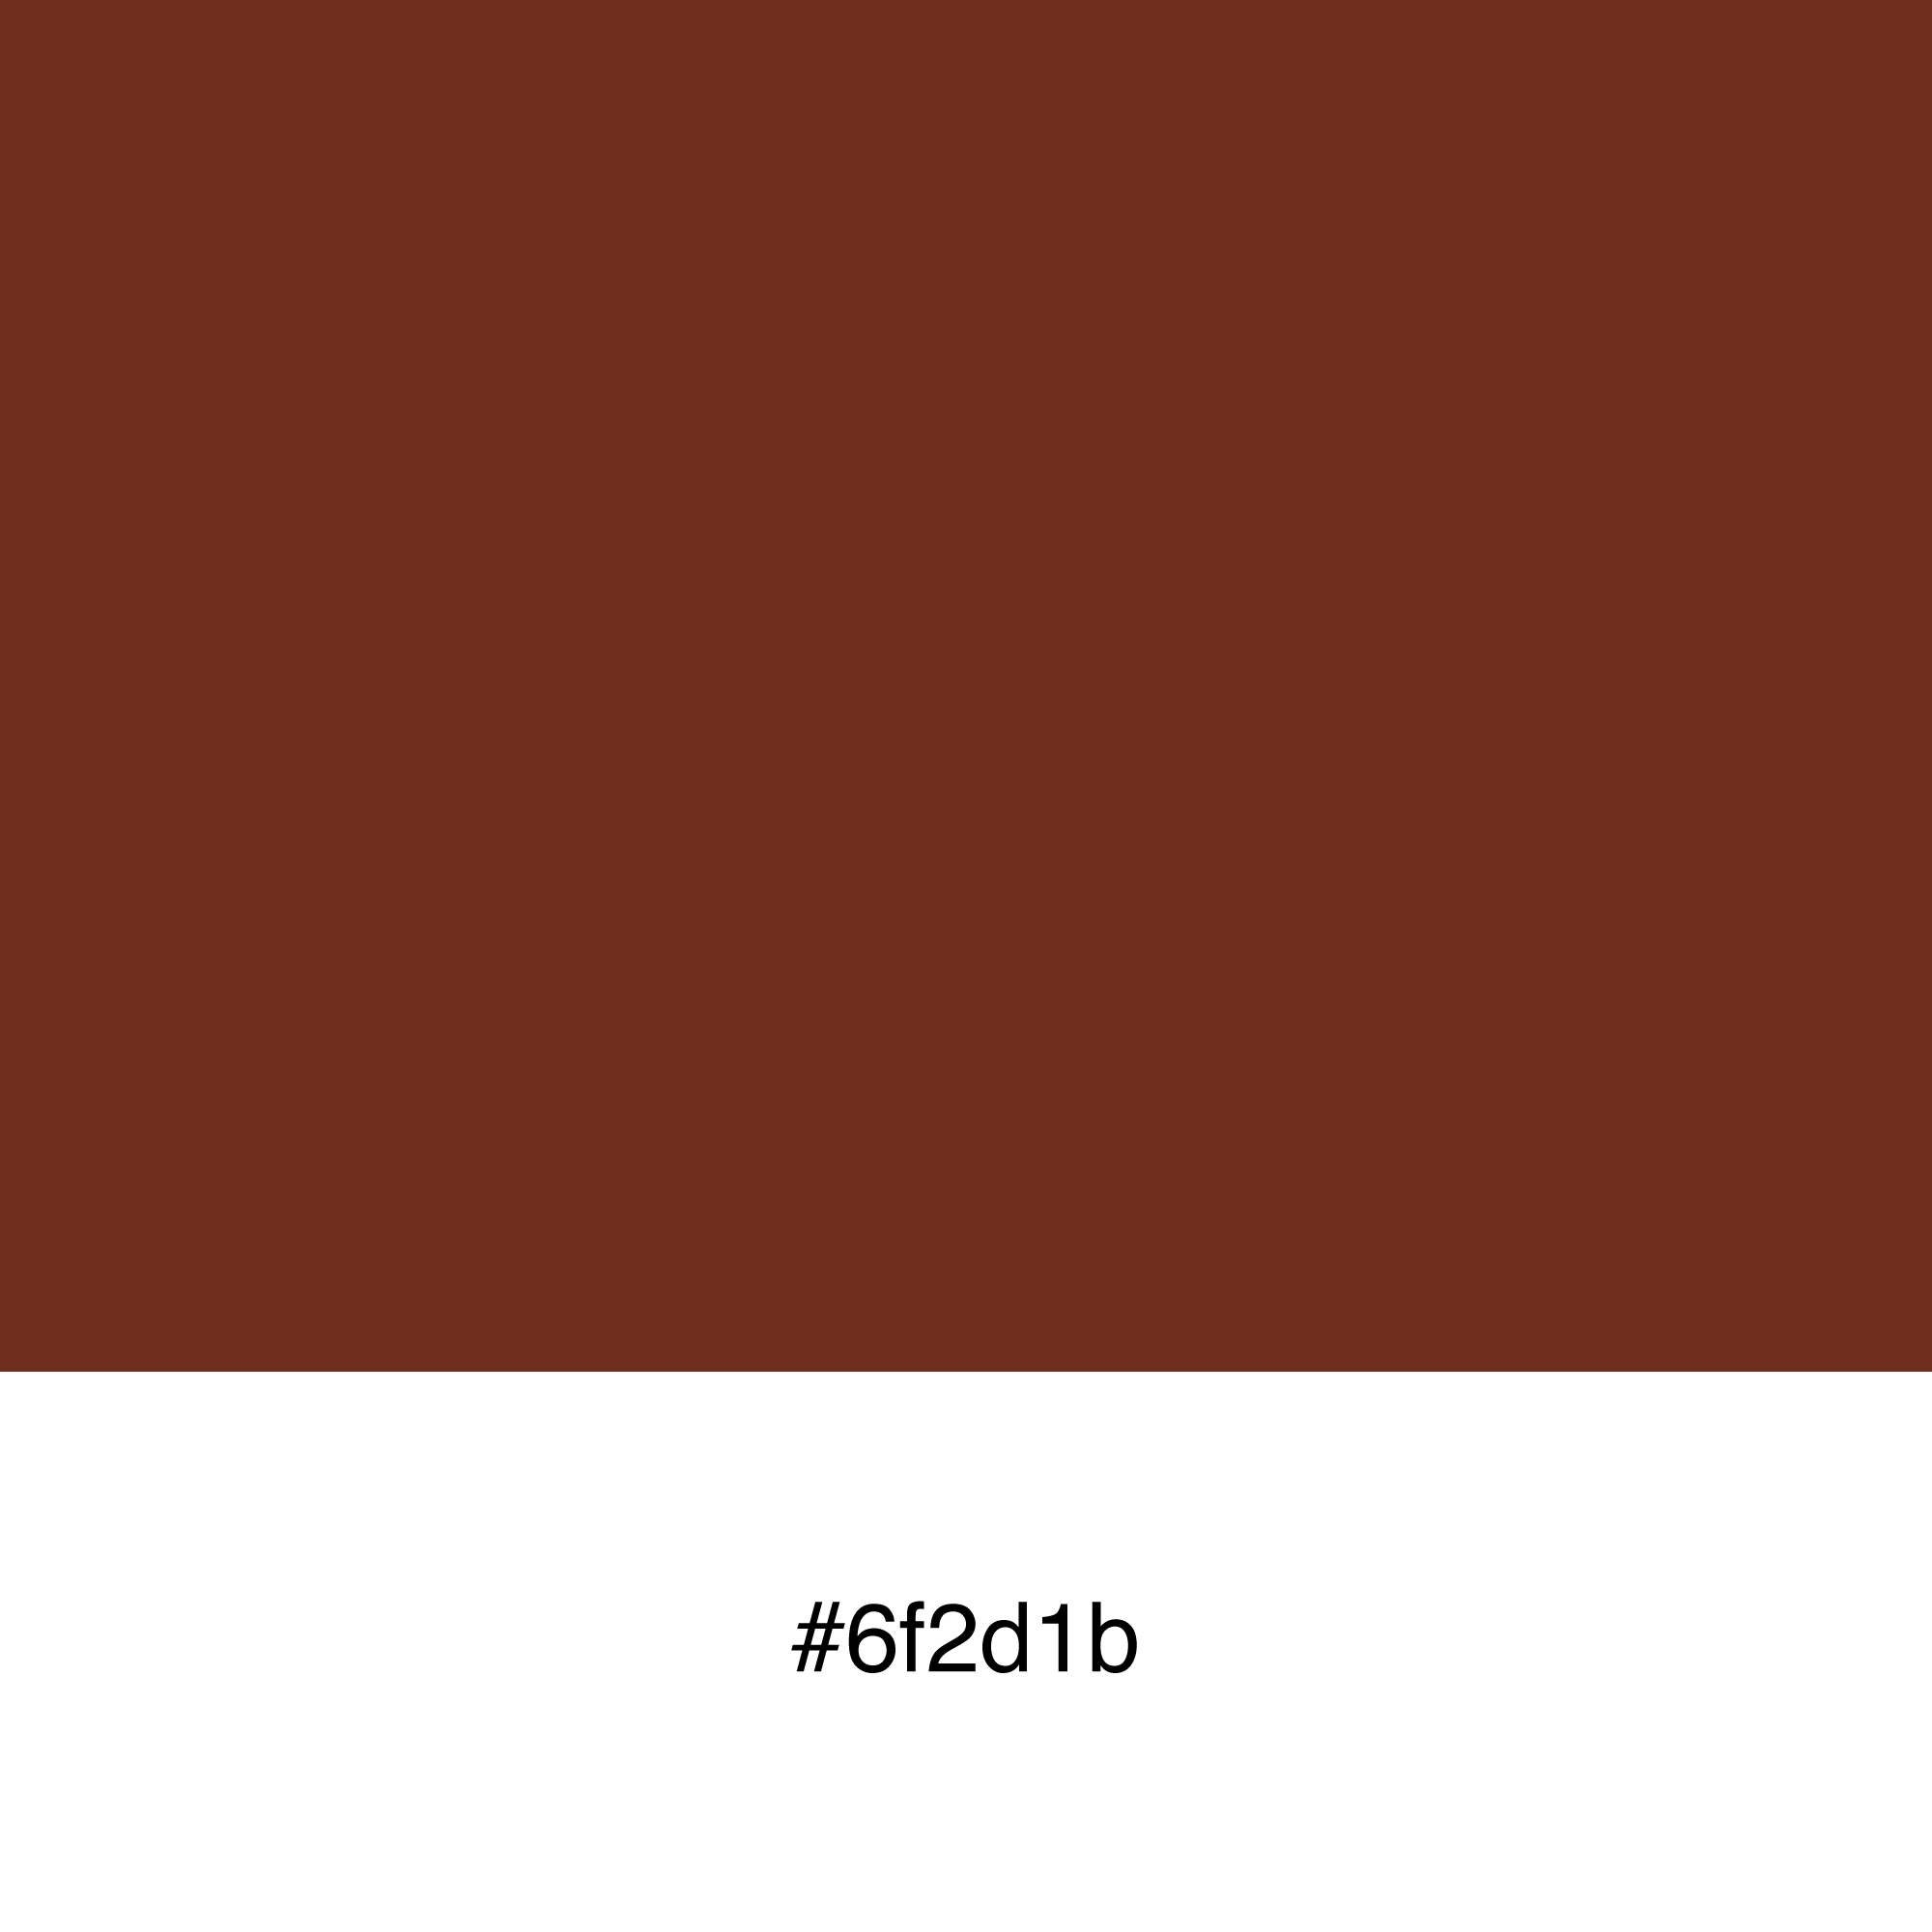 color-swatch-6f2d1b